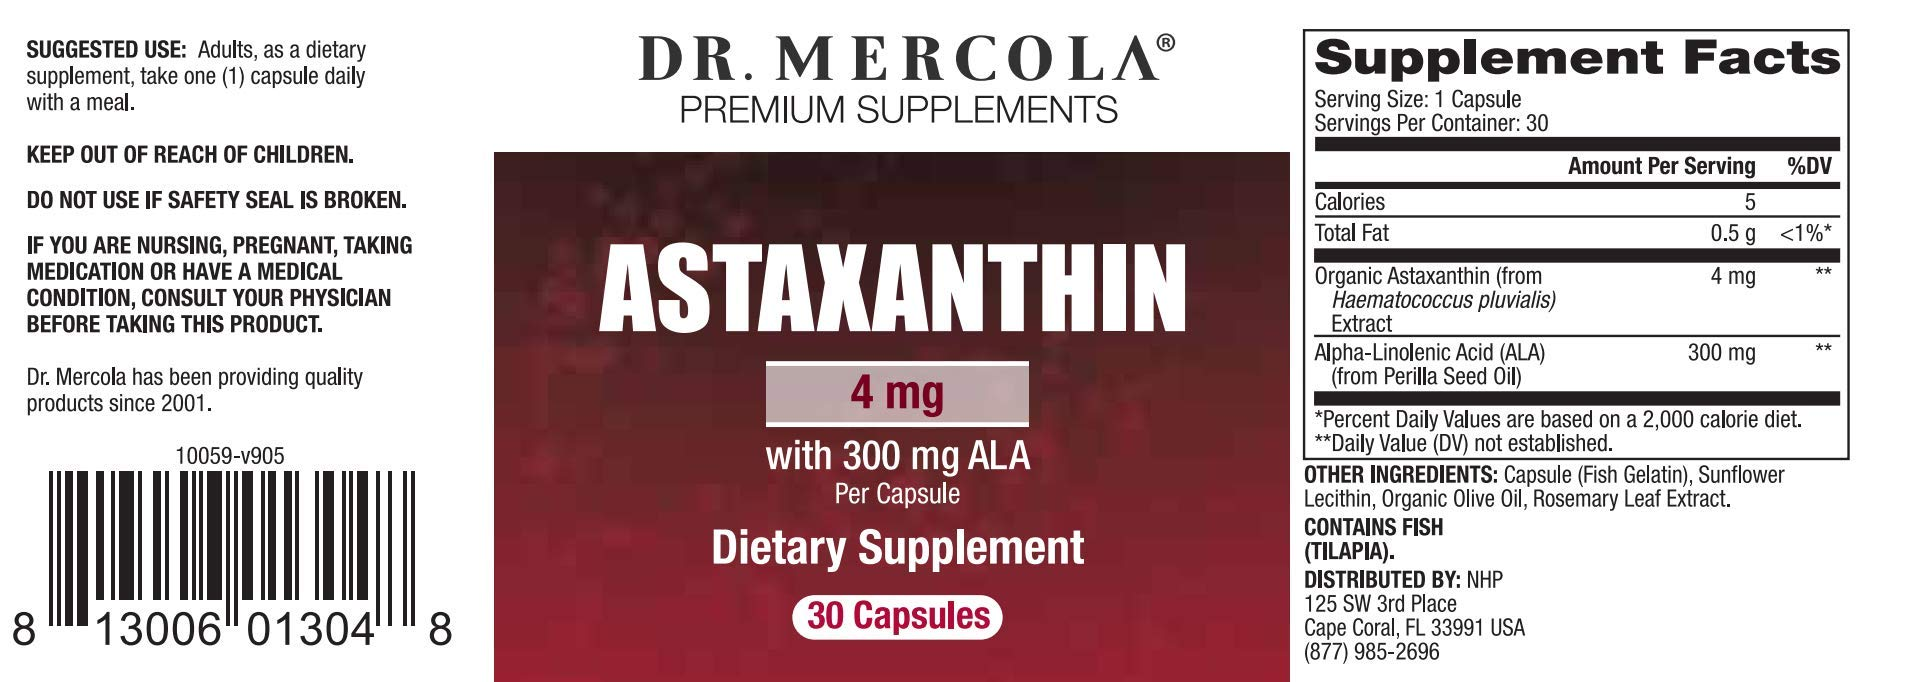 Dr. Mercola: Astaxanthin with 300 mg ALA, 30 caps